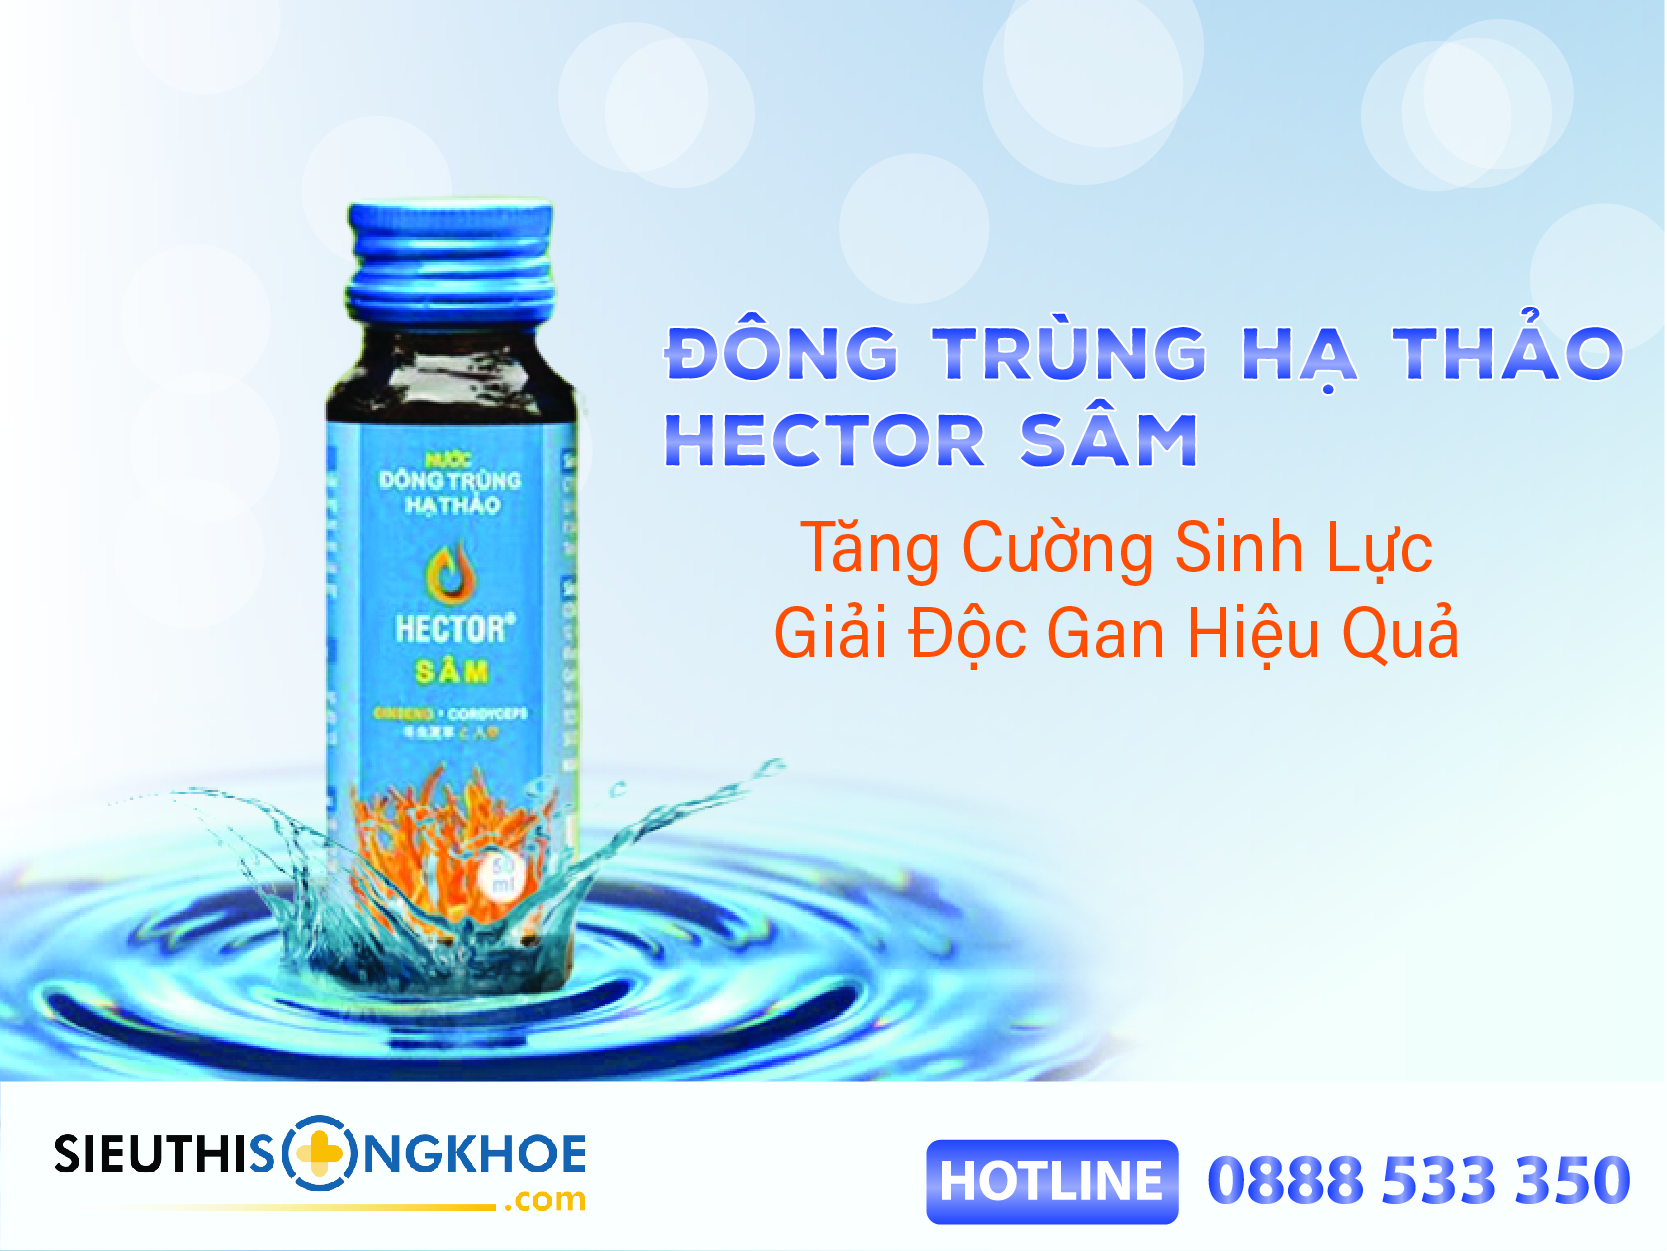 nuoc dong trung ha thao hector sam 1